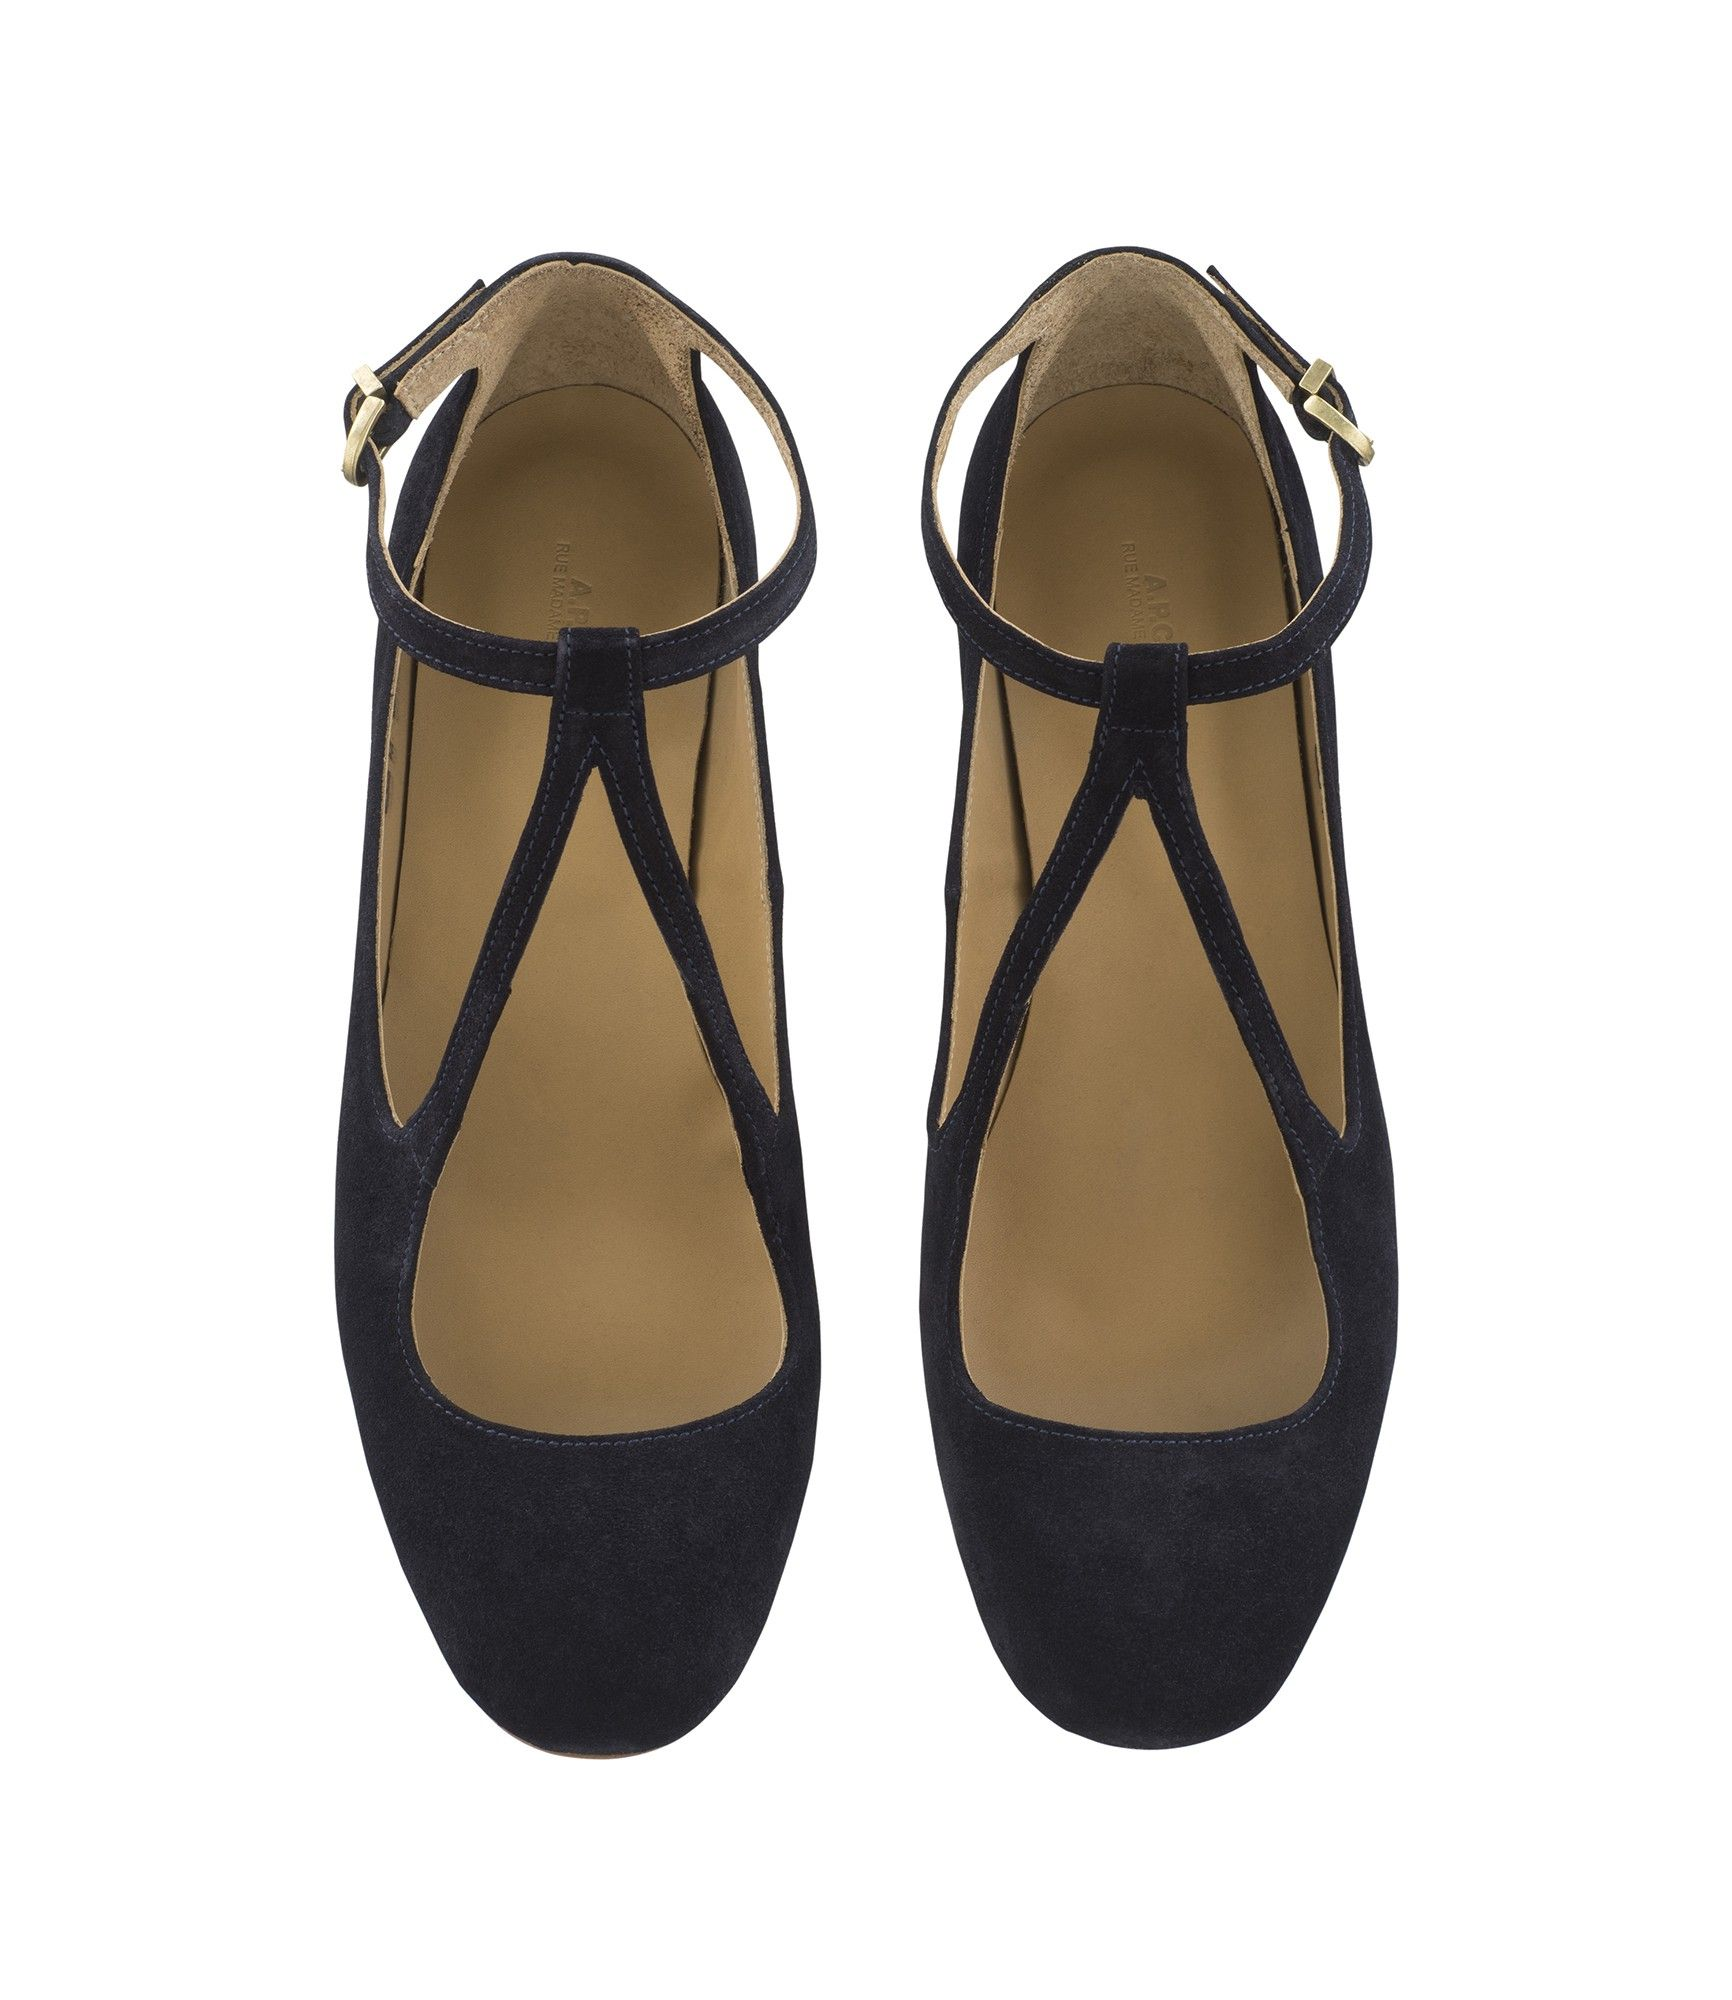 c154bd0ee126 T Bar Solange - Footwear - Women Dark Navy Blue